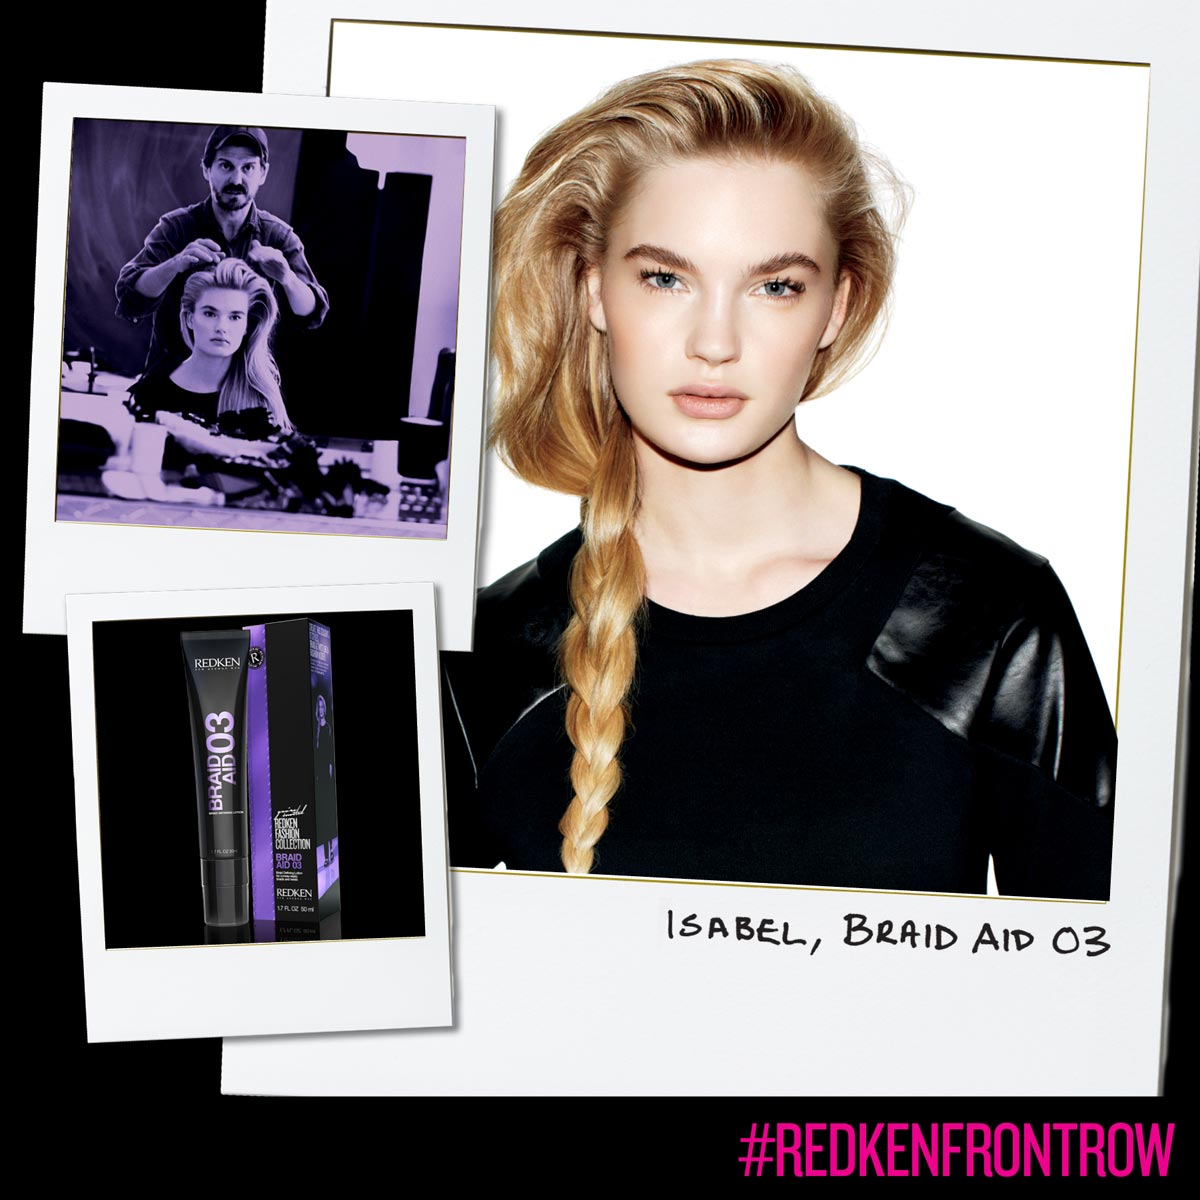 Braid on a side by Redken and styling for braids.